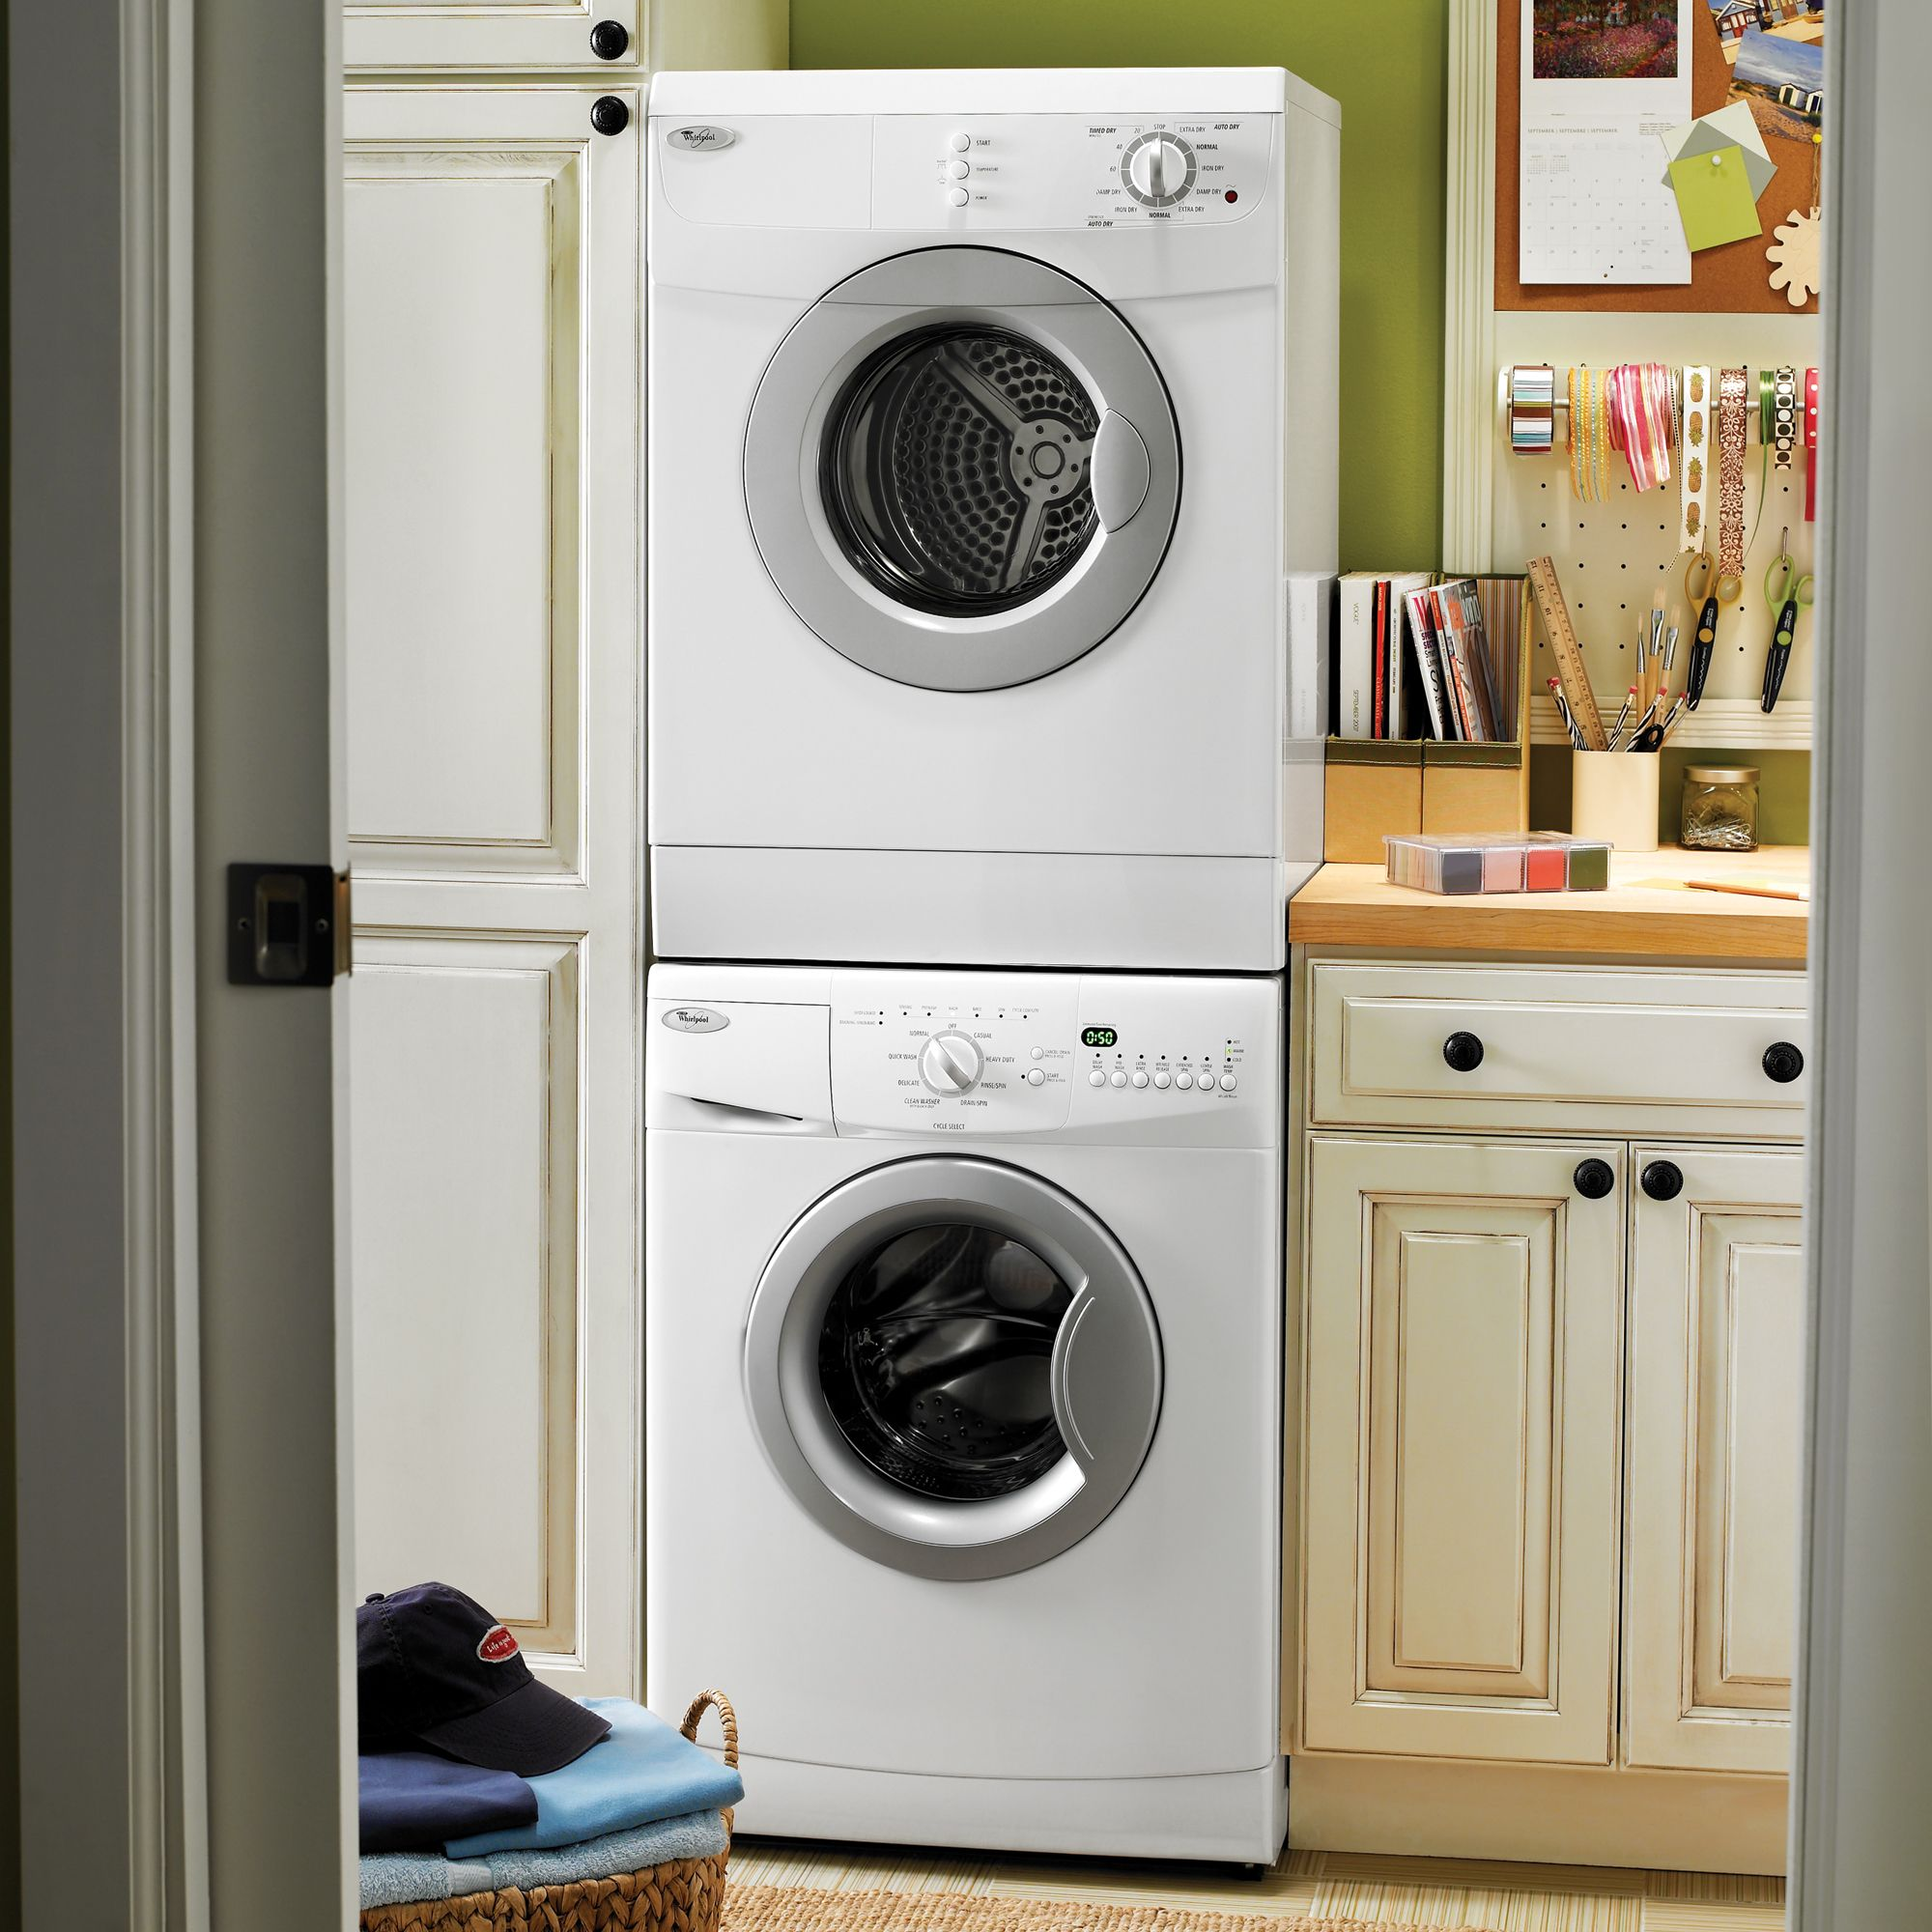 Whirlpool WFC7500VW 2.0 cu. ft. Front-load Washing Machine - White